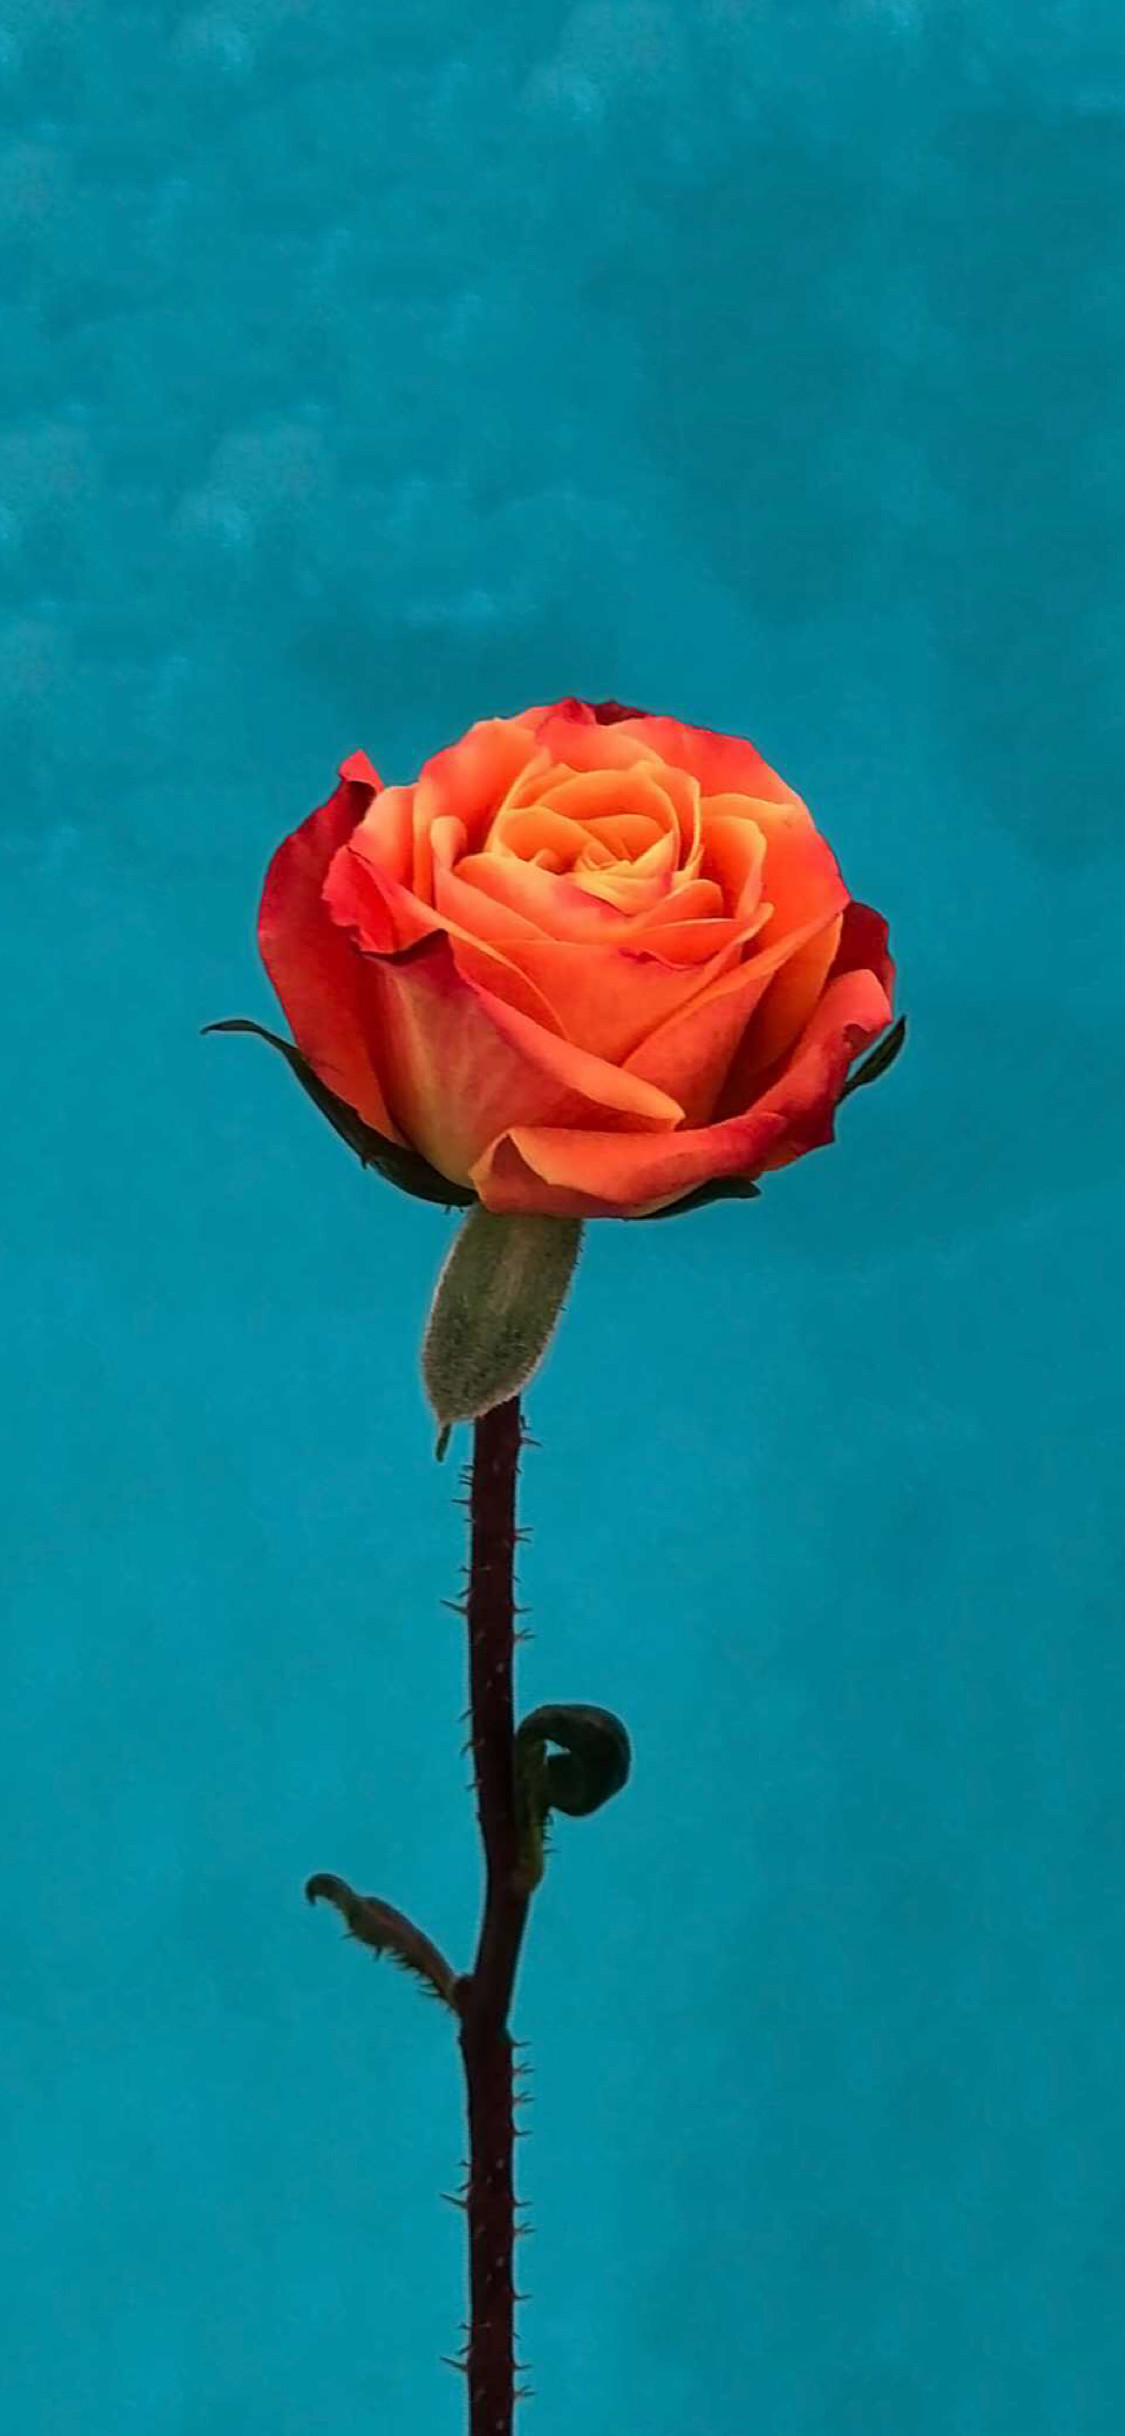 1229756 vertical red rose iphone wallpaper 1125x2436 for full hd